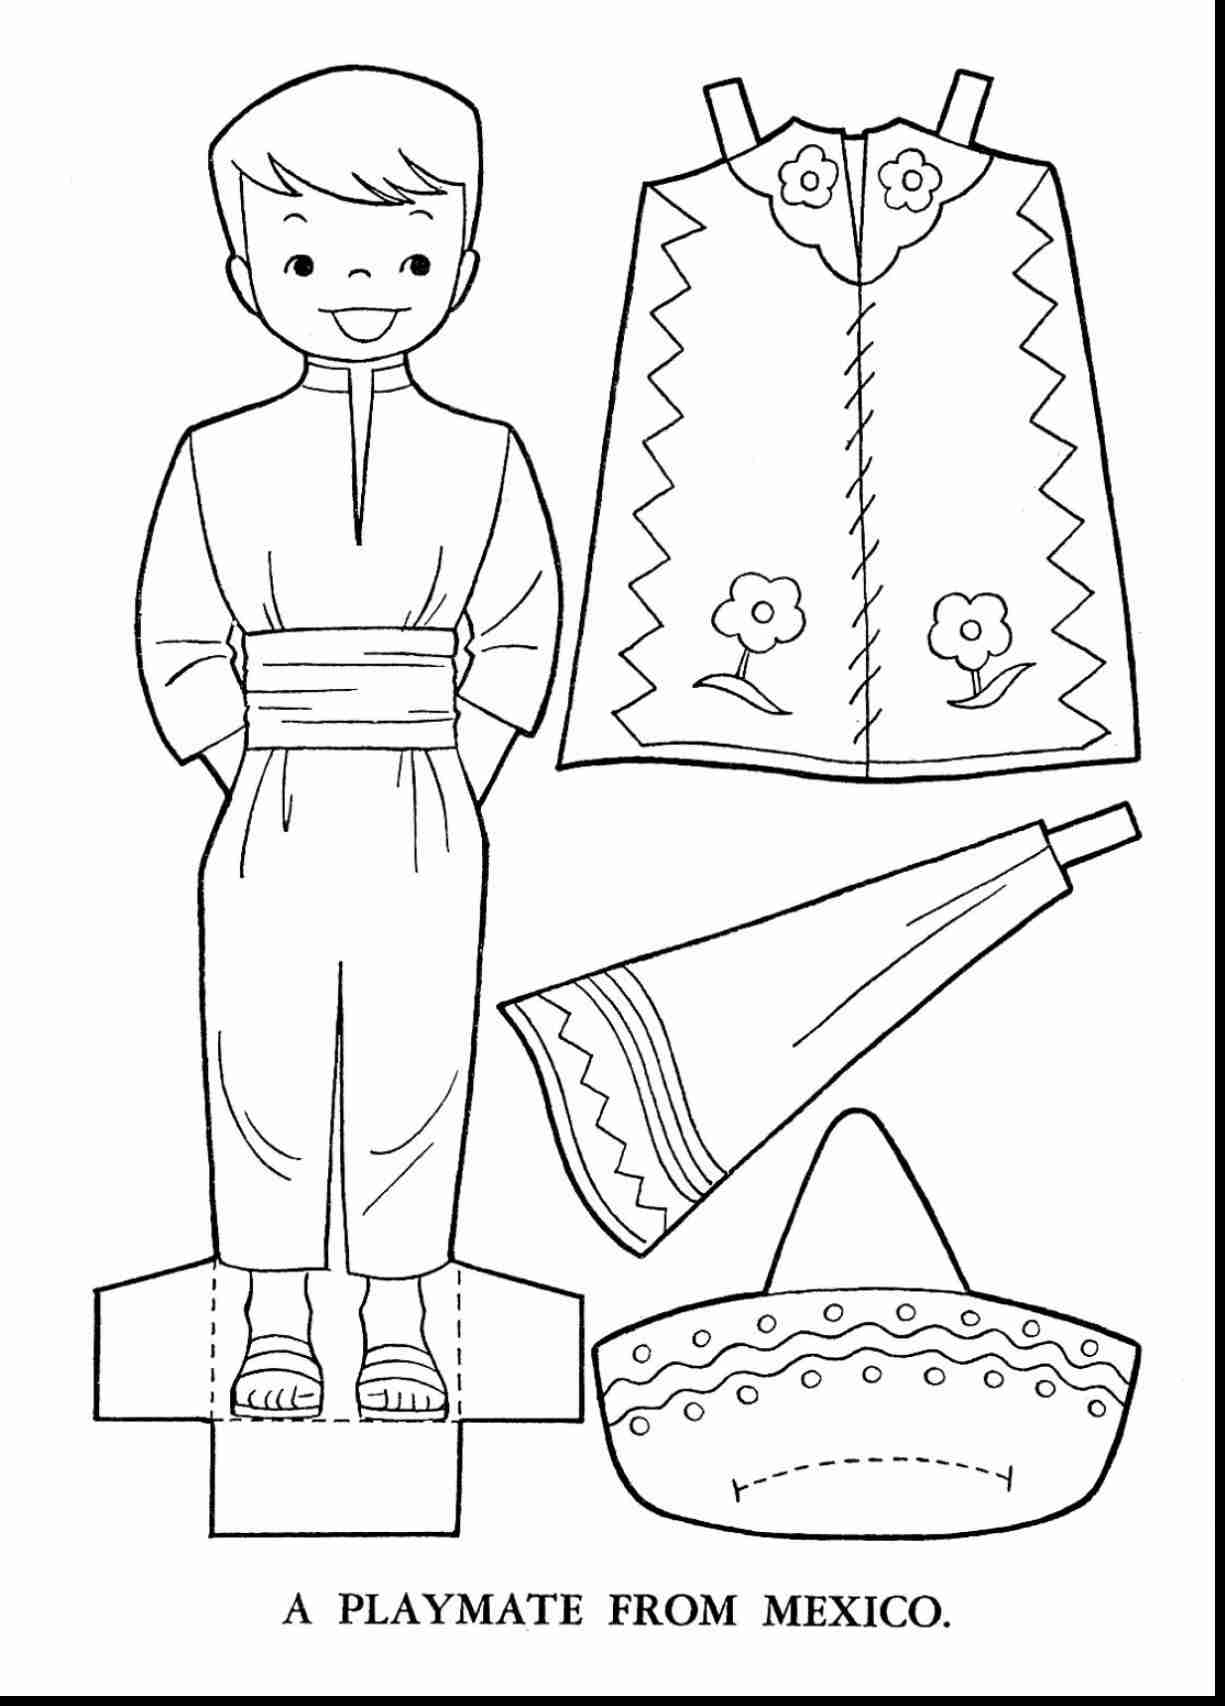 Mexico Coloring Pages Mexican Culture At Getdrawings